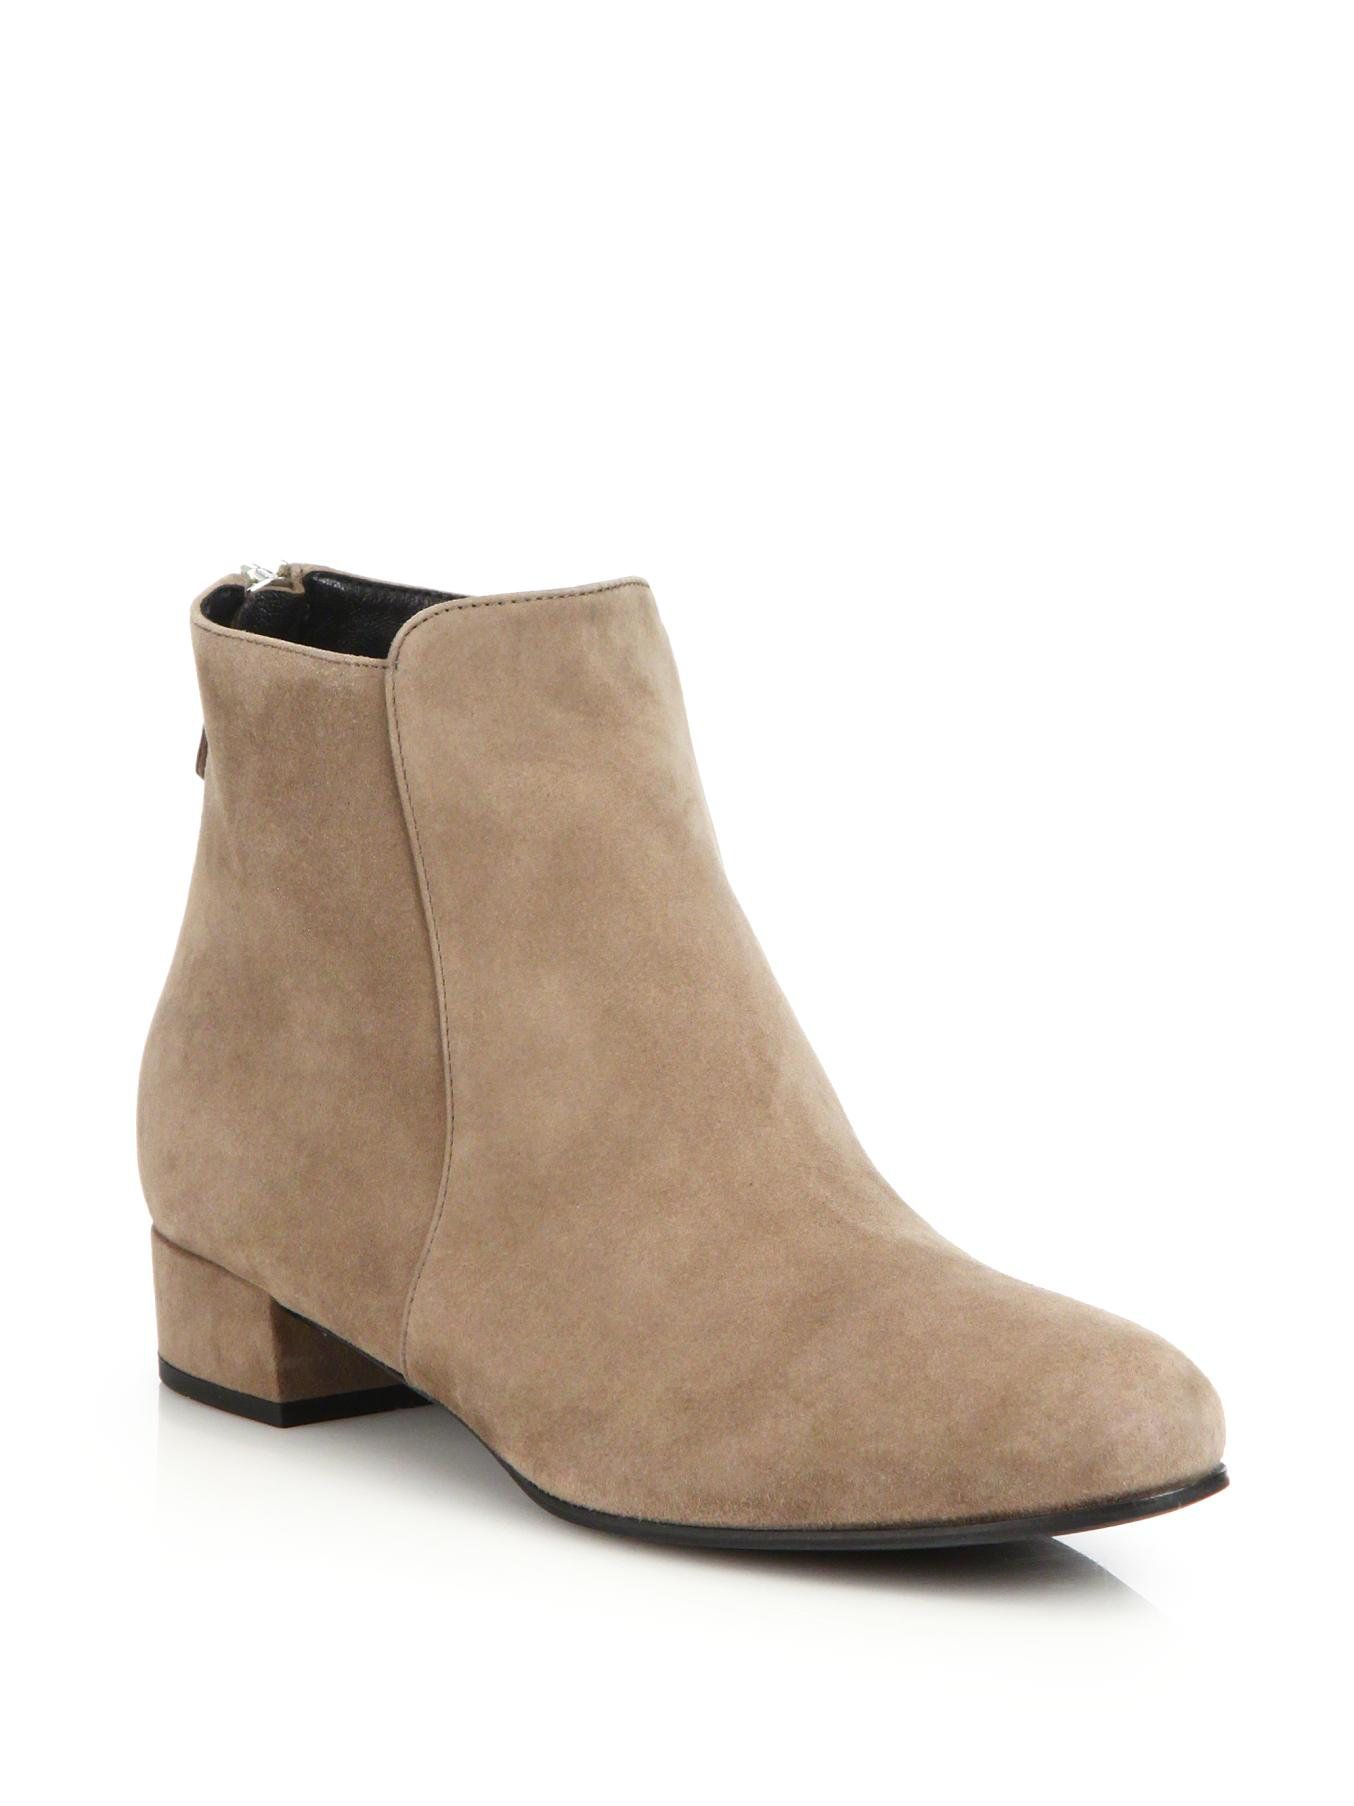 Prada Suede Flat Ankle Boots In Beige Tan Lyst